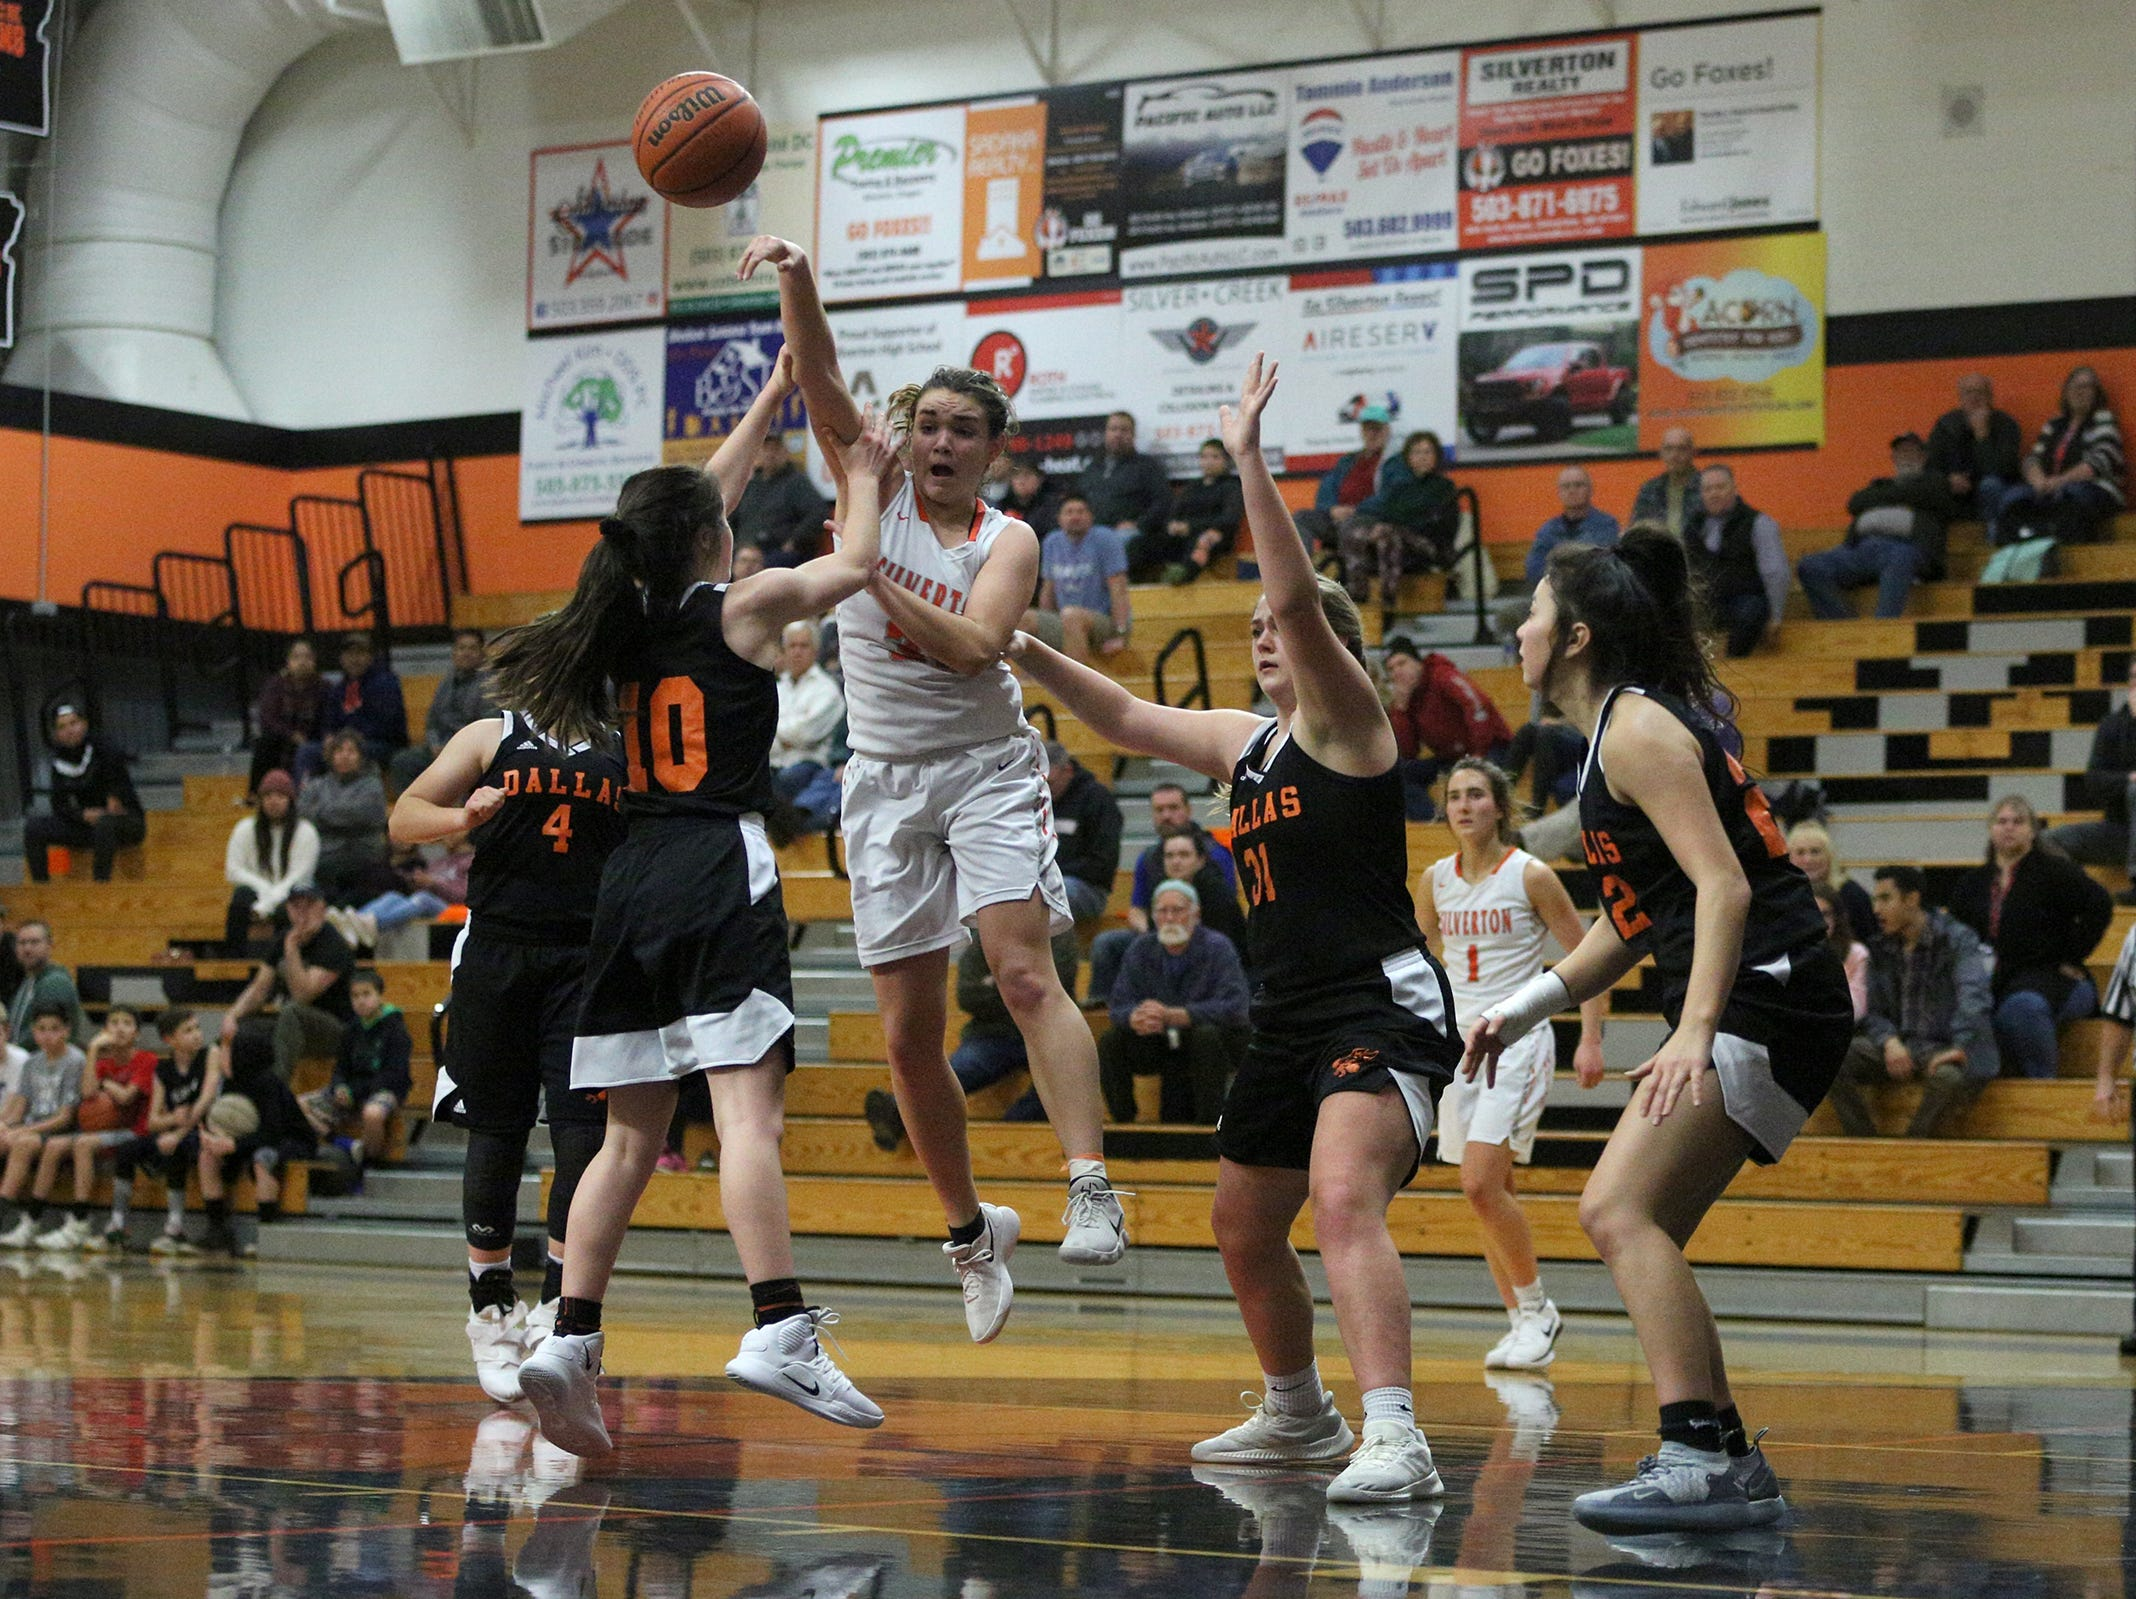 Silverton's Lilly Horner (11) goes up for a past during the Dallas High School vs. Silverton High School girls basketball game in Silverton on Tuesday, Dec. 8, 2019.